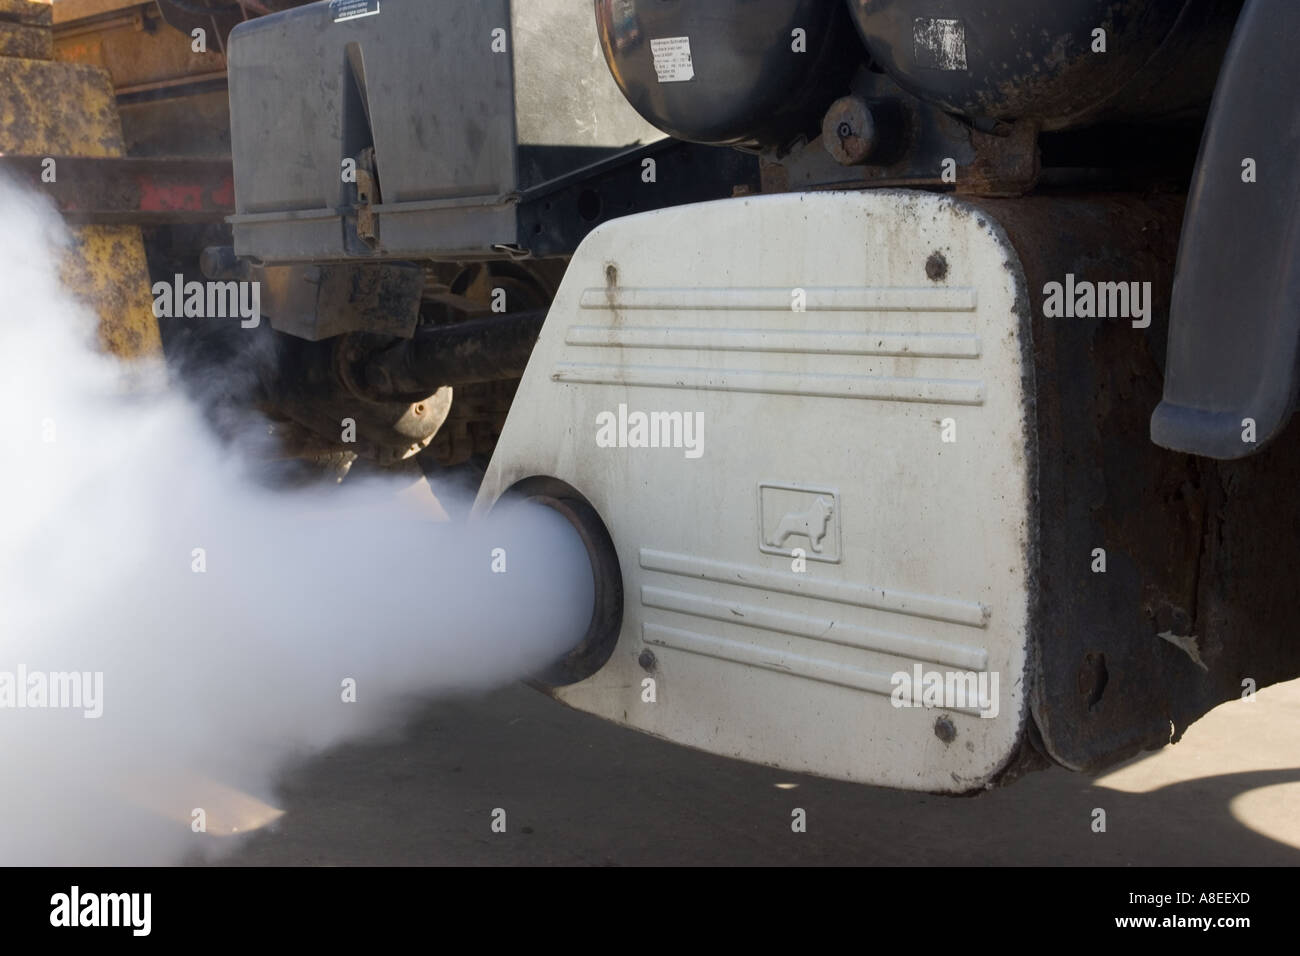 Exhaust gases emitted from silencer of large truck UK - Stock Image